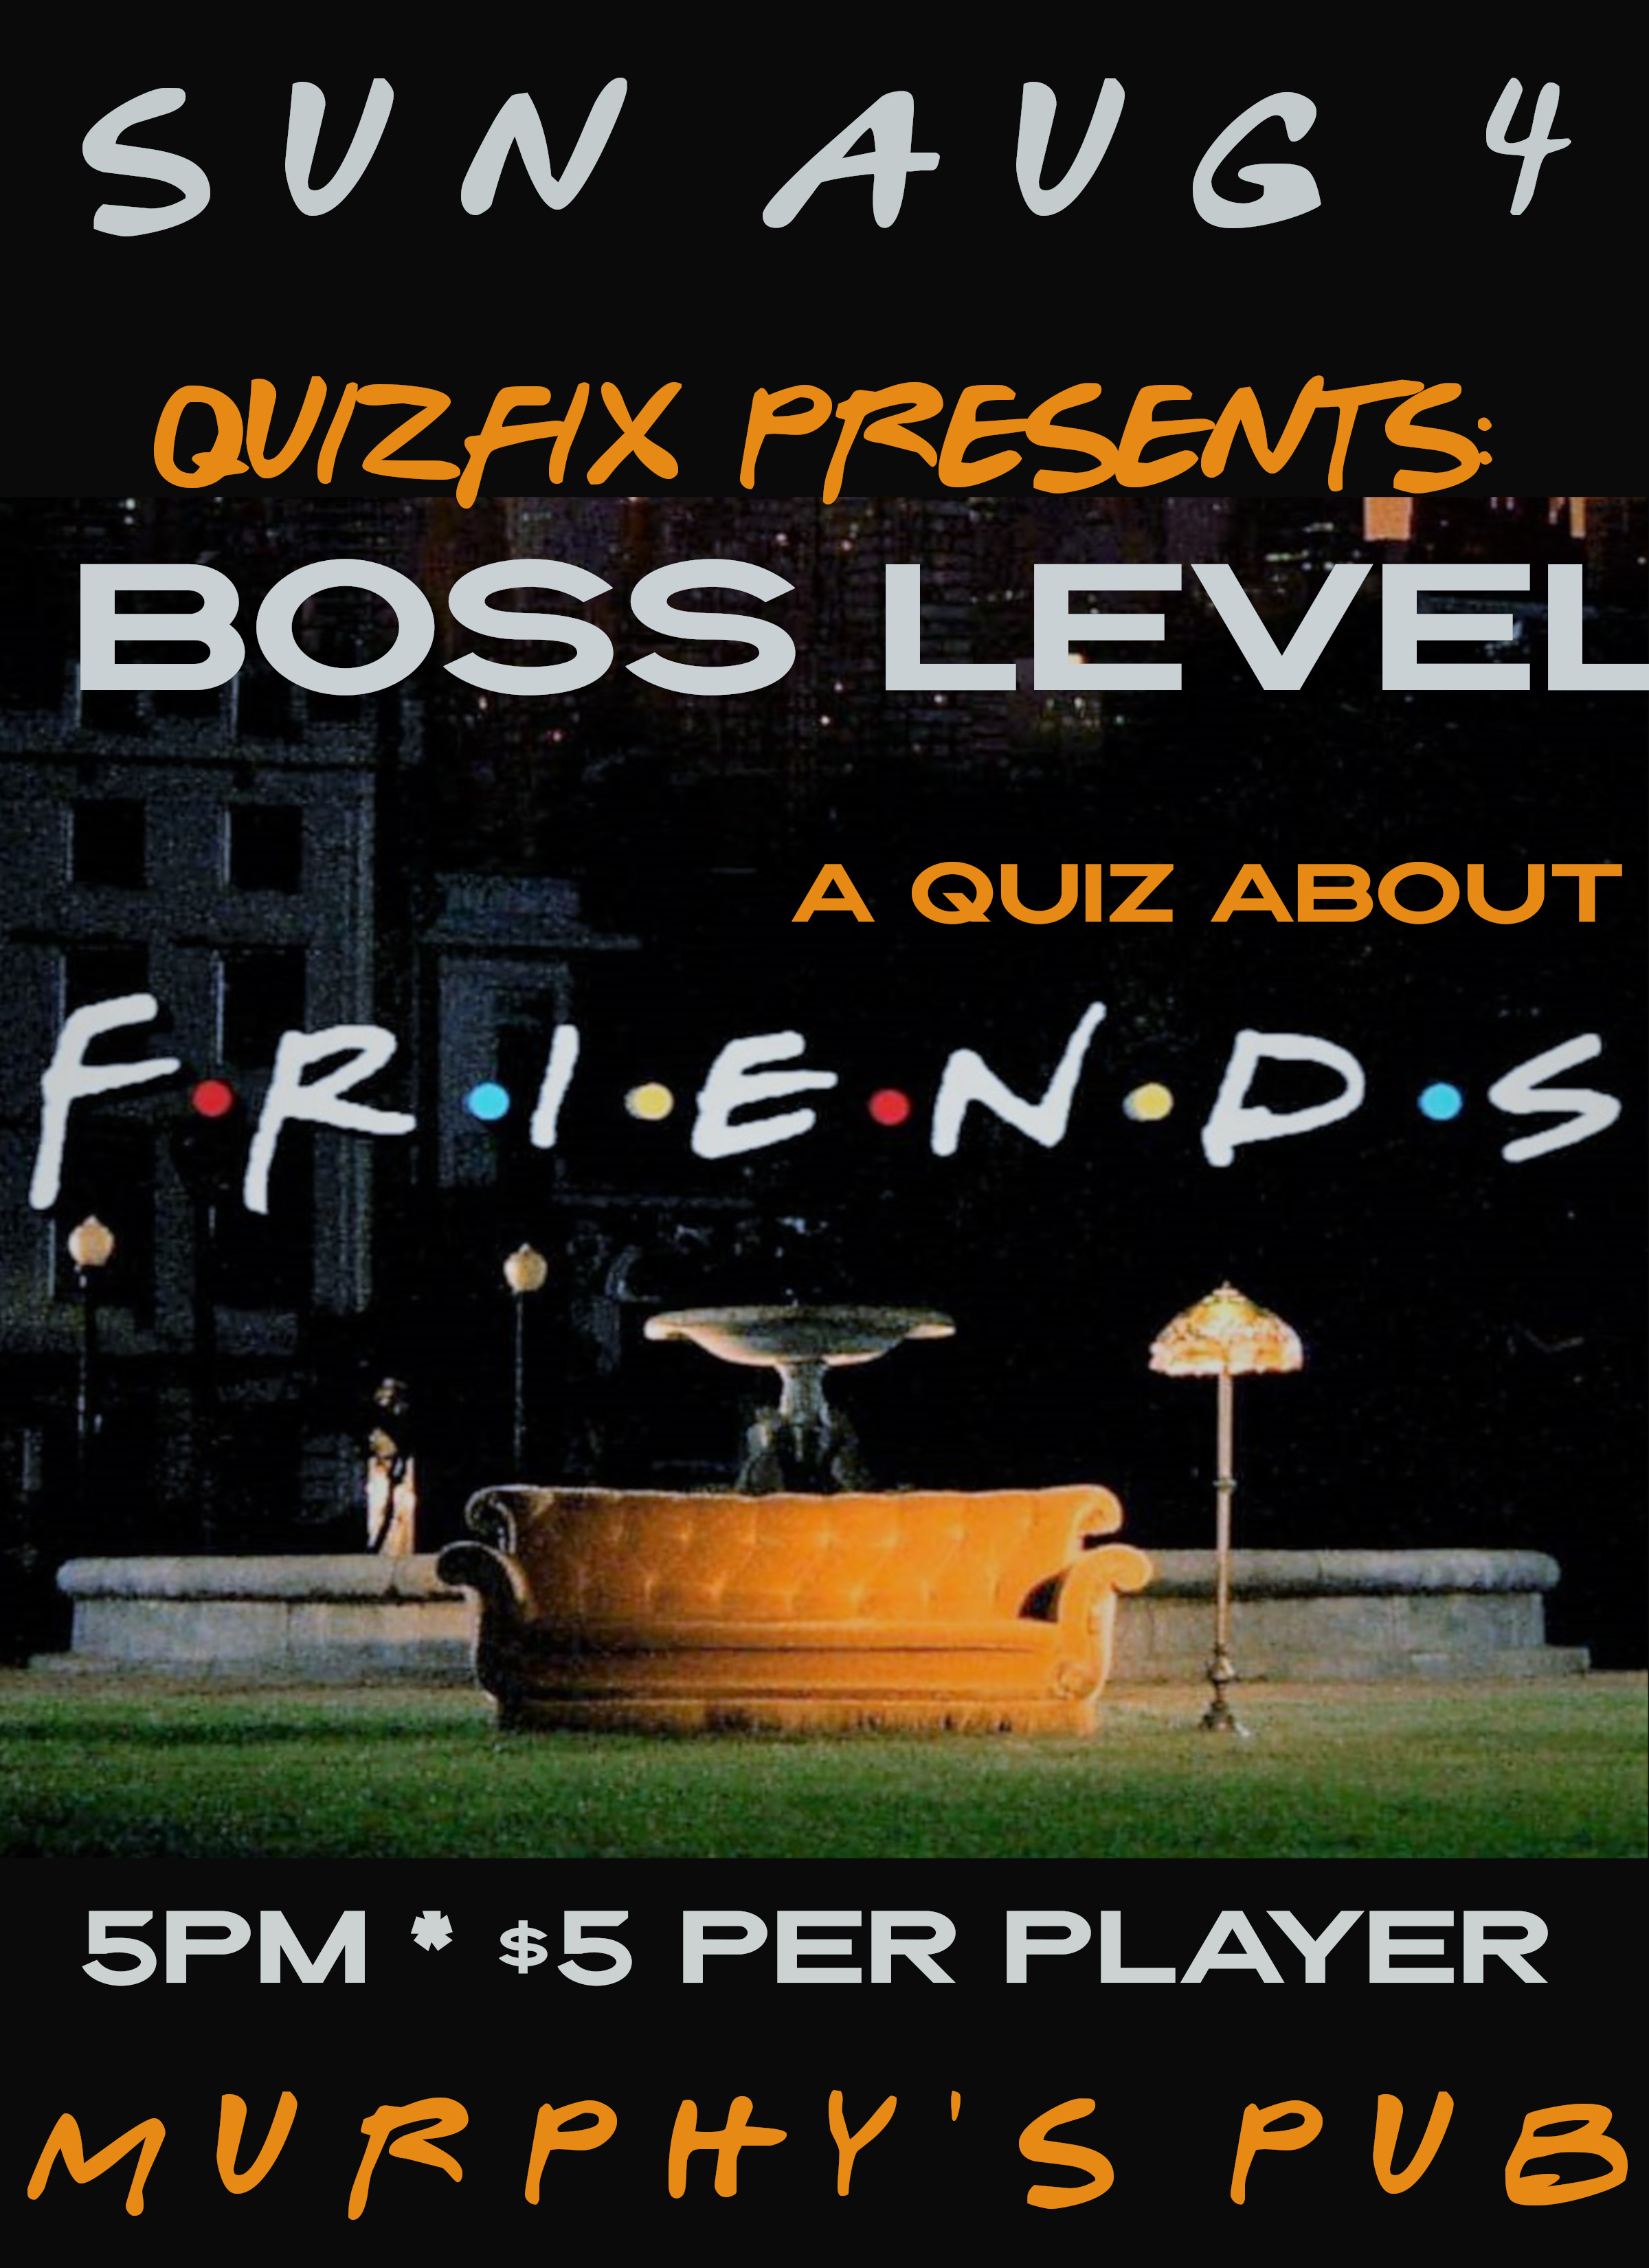 BOSS+LEVEL+FRIENDS+POSTER.jpg